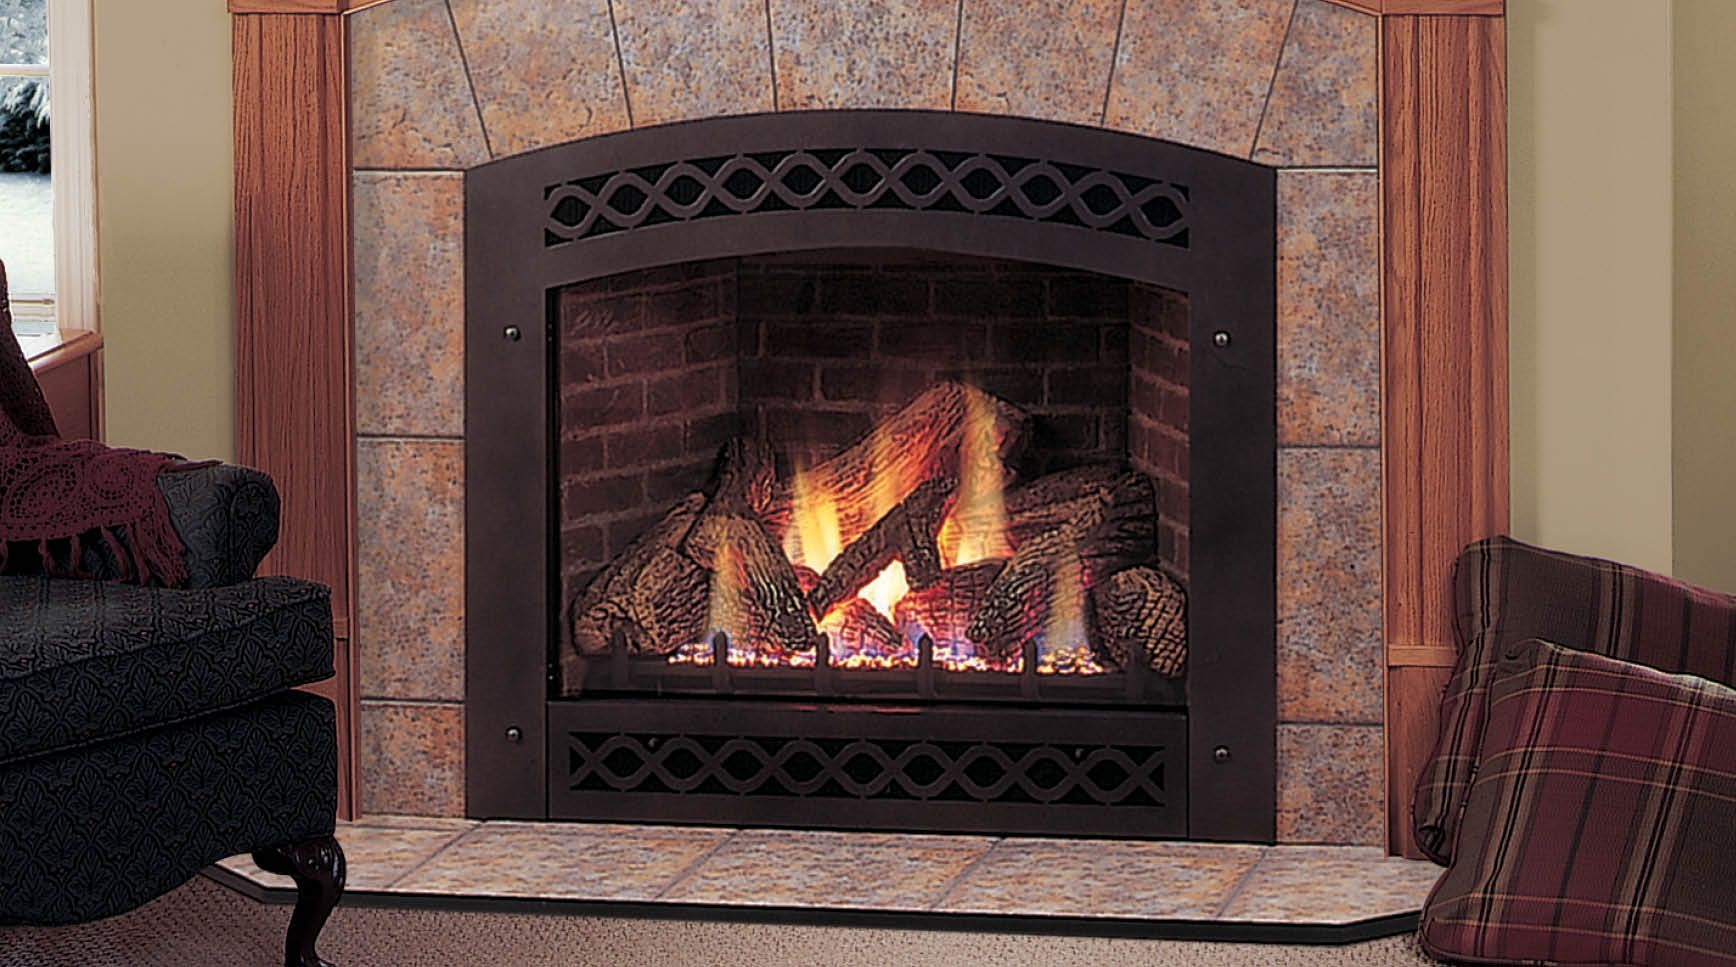 Glass Screen For Gas Fireplace Pin By Wendy Adams On Fireplaces Pinterest Gas Fireplace